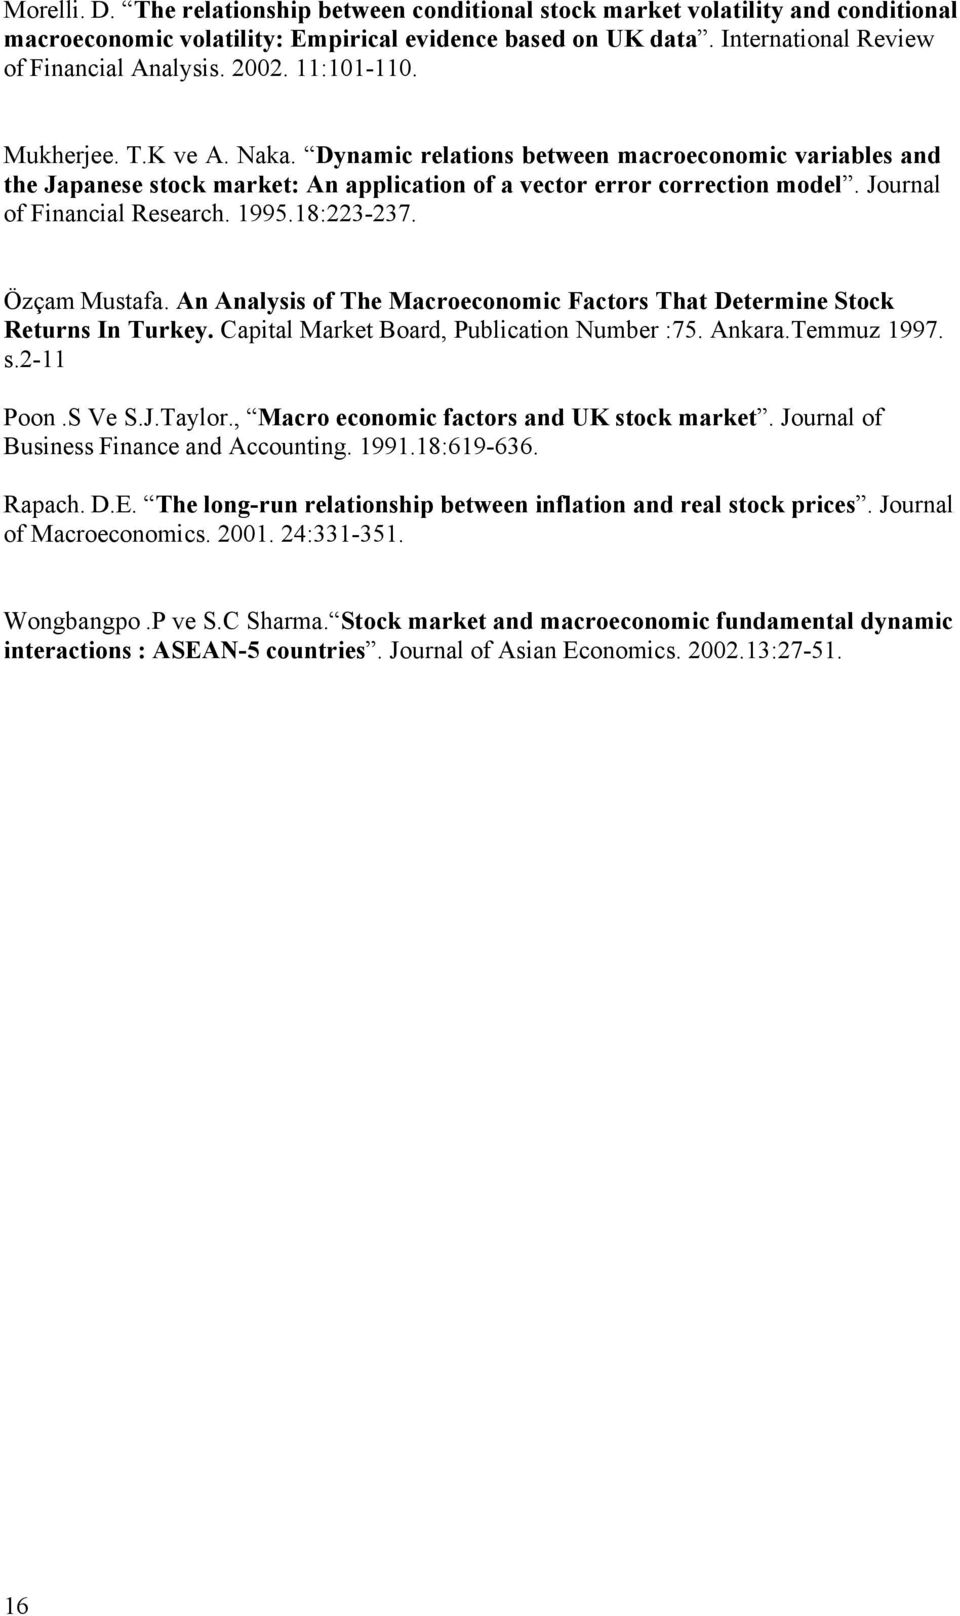 Journal of Financial Research. 1995.18:223-237. Özçam Mustafa. An Analysis of The Macroeconomic Factors That Determine Stock Returns In Turkey. Capital Market Board, Publication Number :75. Ankara.